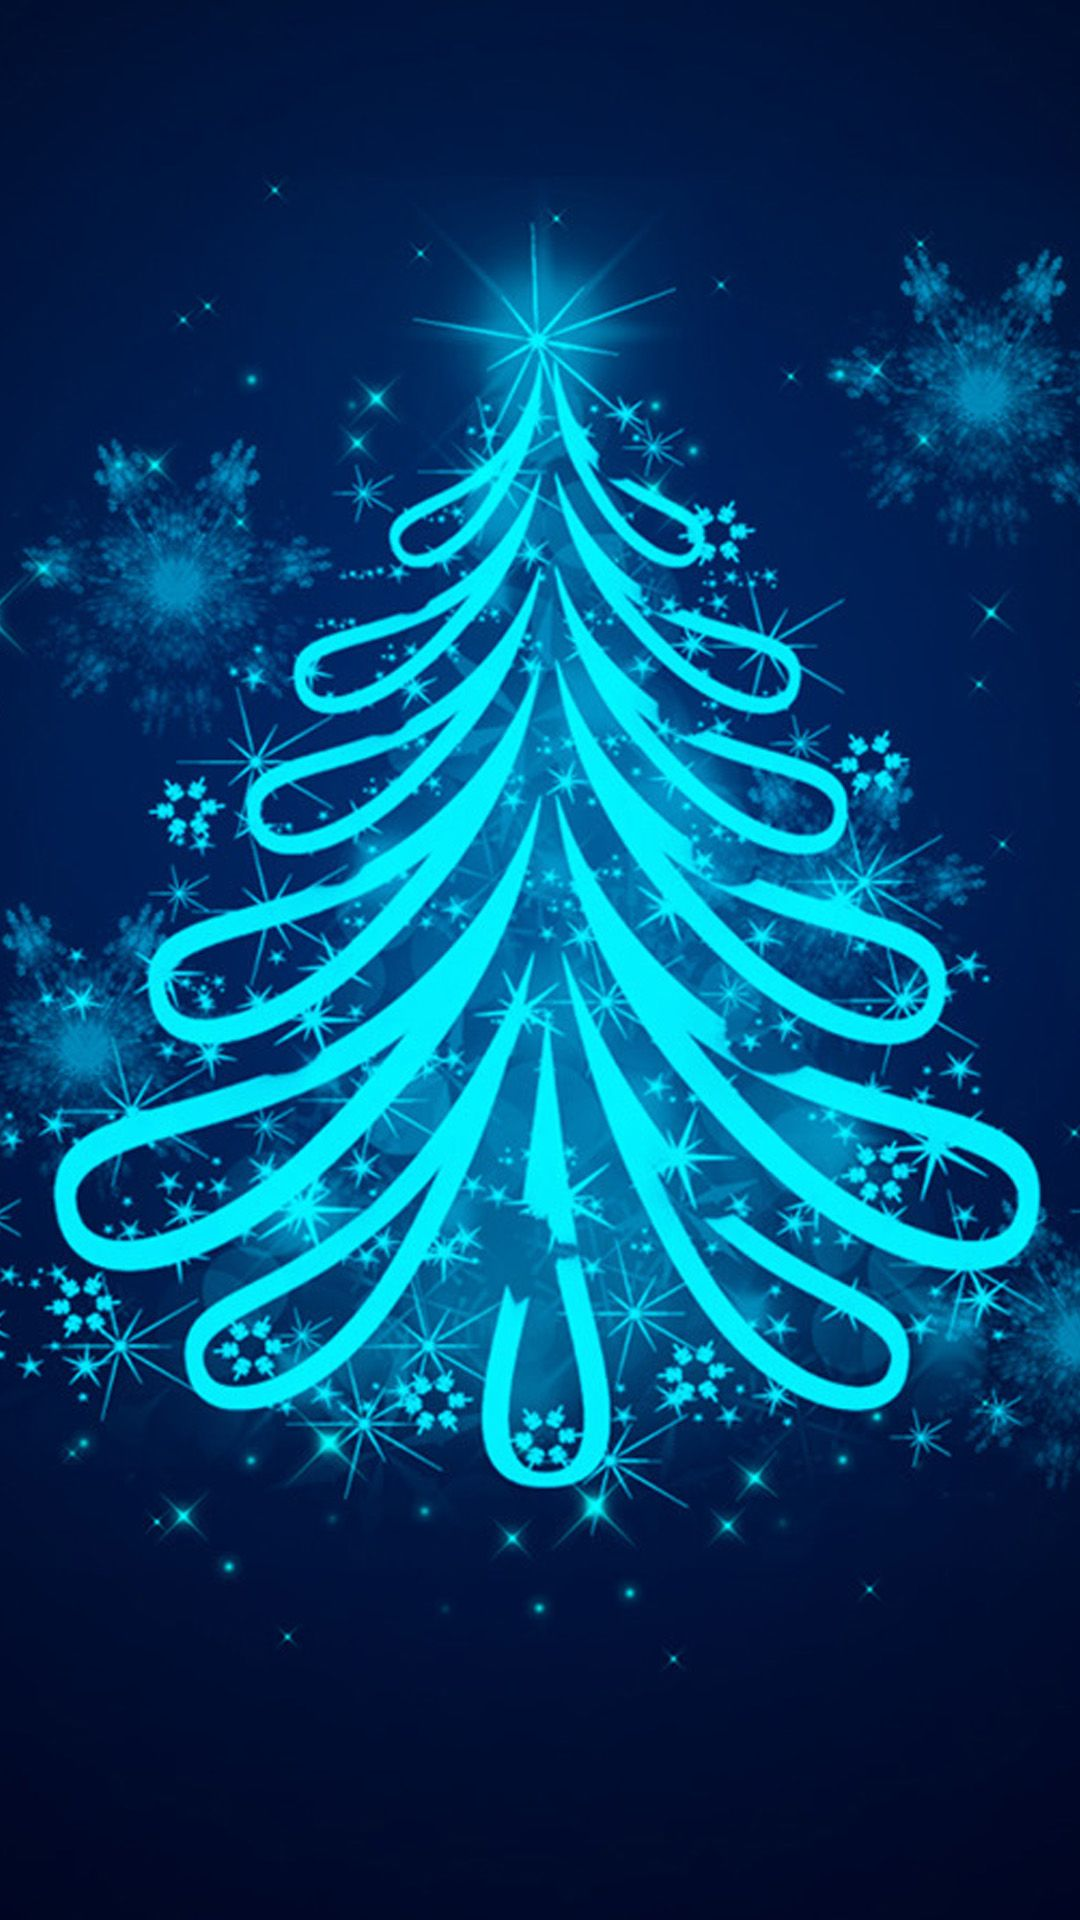 Christmas Theme Htc One Max Wallpapers Christmas Phone Wallpaper Iphone 6 Plus Wallpaper Christmas Wallpaper